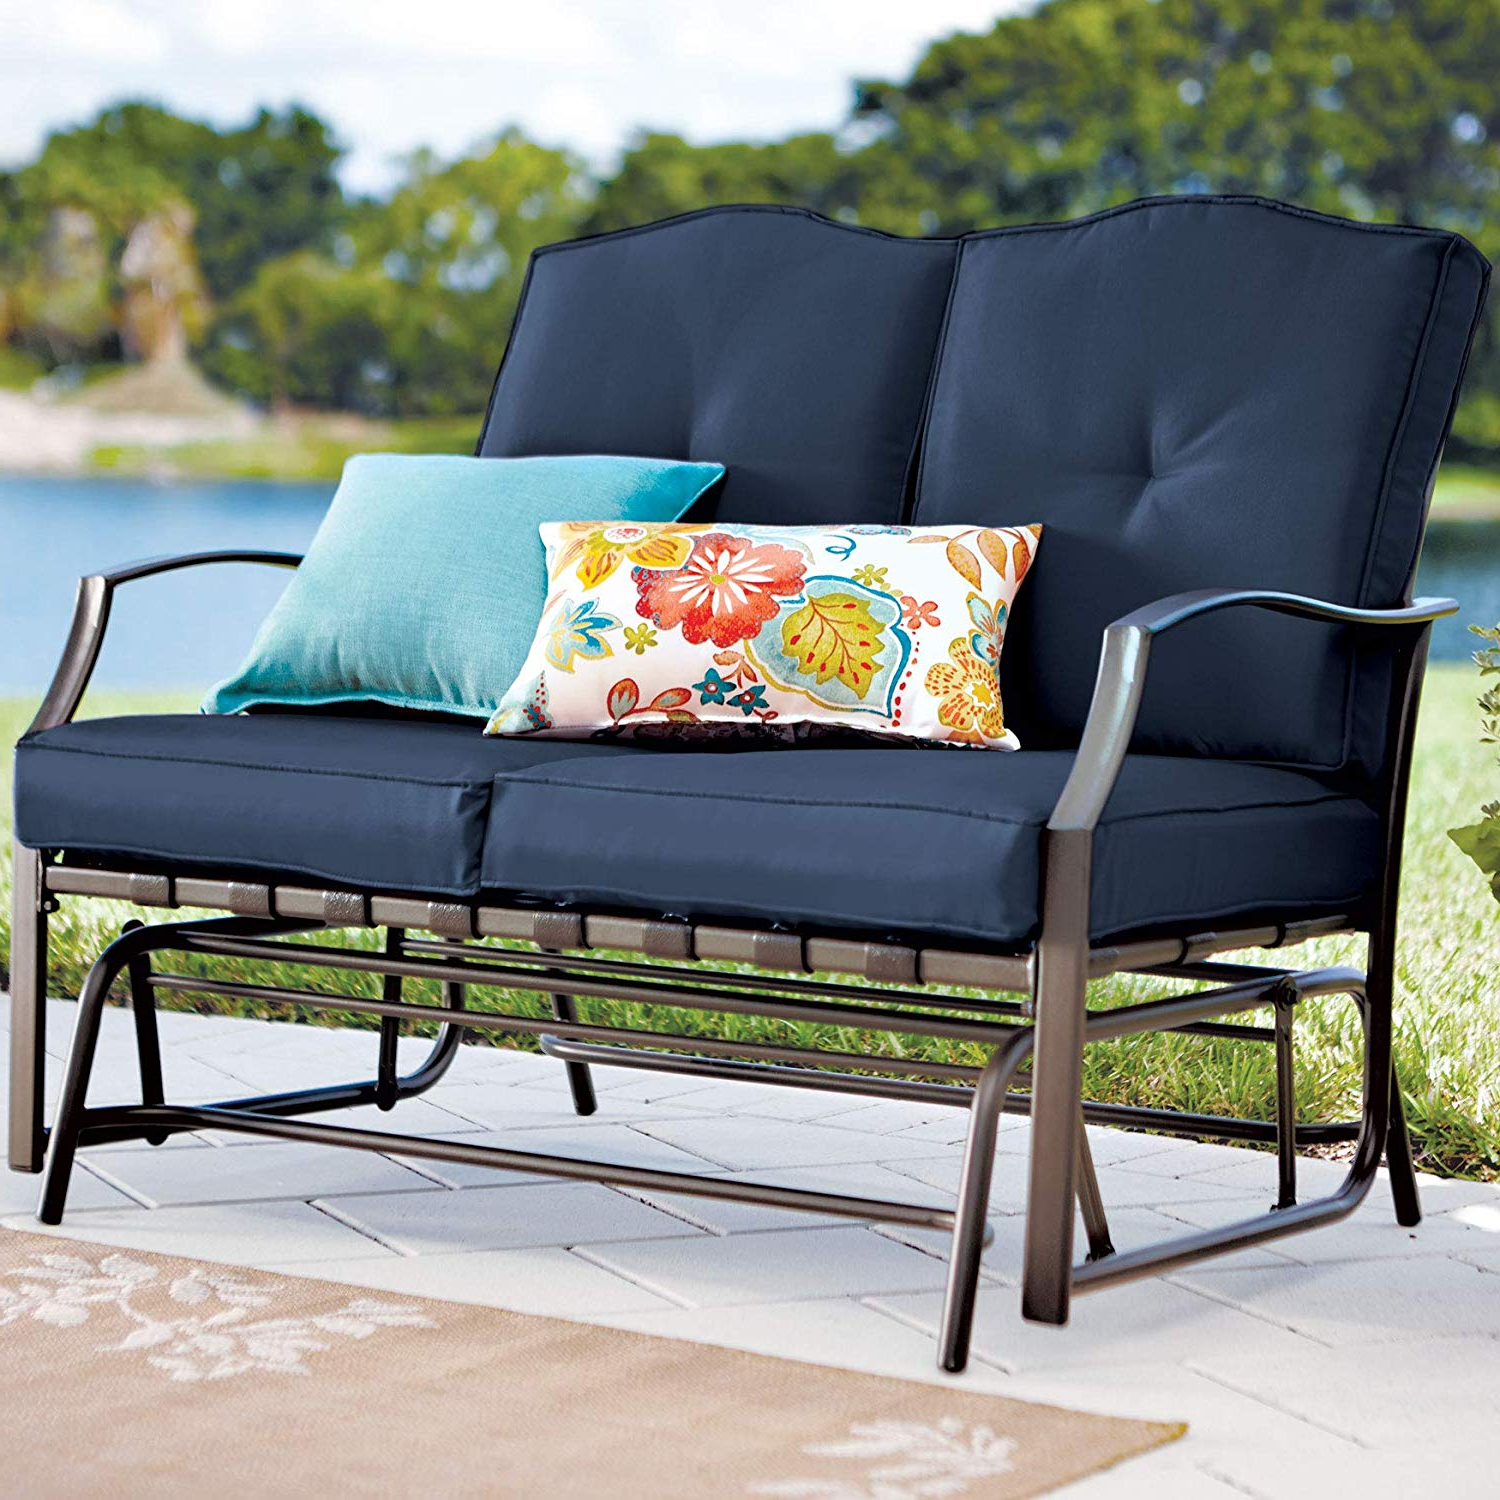 Brylanehome Loveseat Glider – Geranium Intended For Latest Loveseat Glider Benches With Cushions (Gallery 3 of 30)